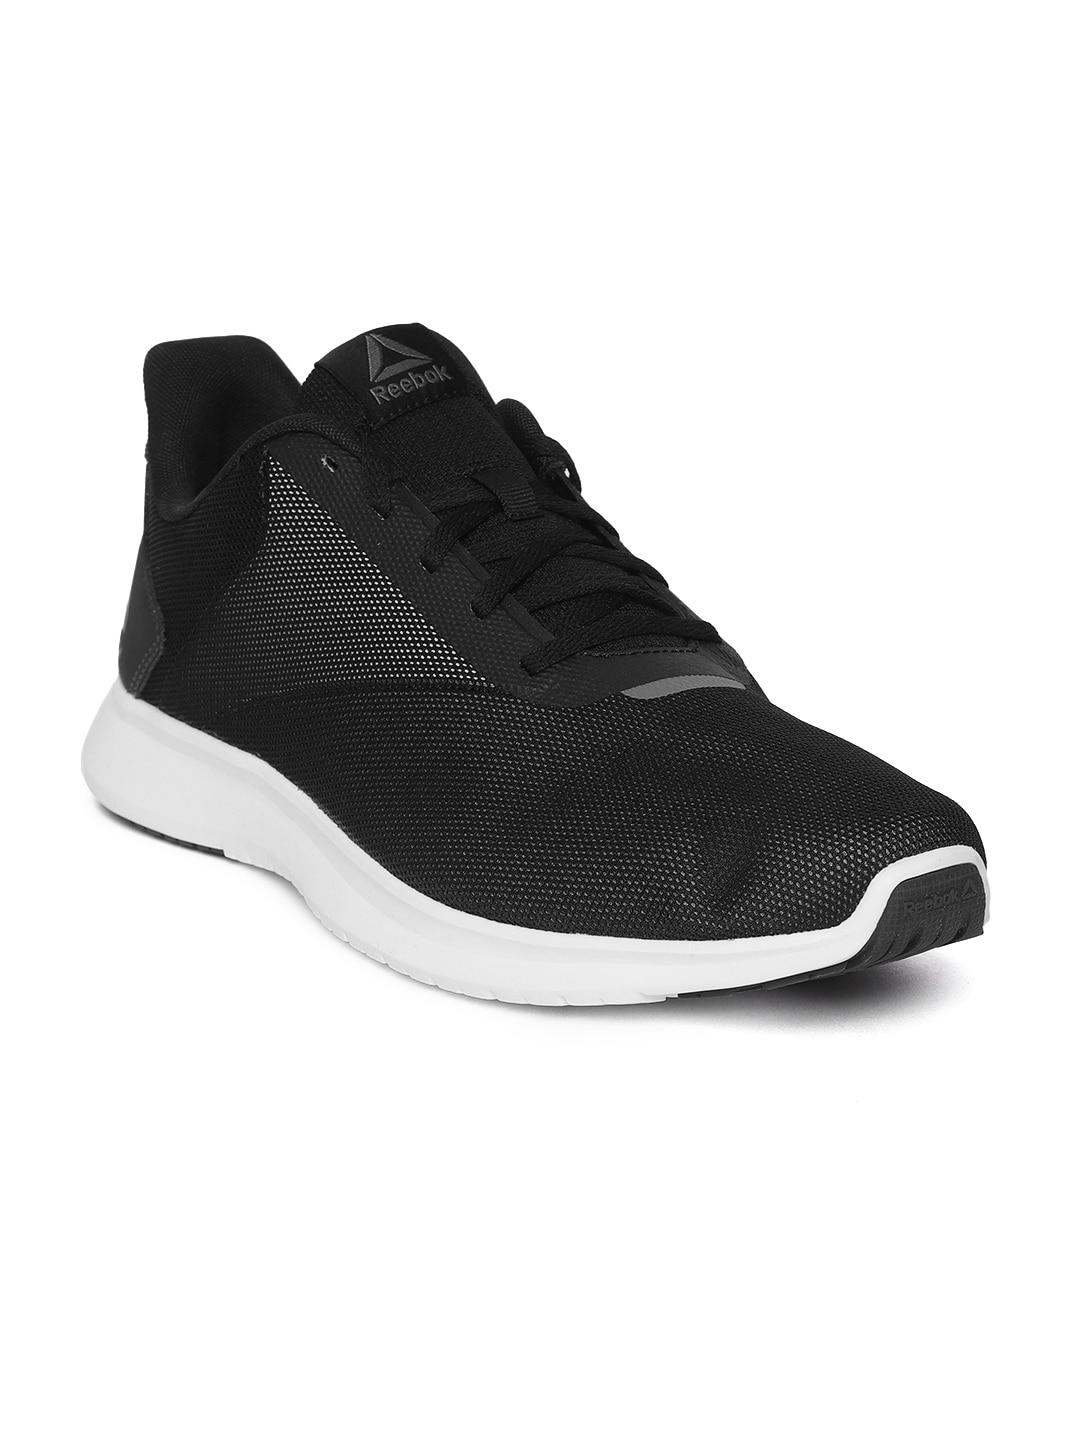 premium selection eb6d2 f837c Reebok Sports Shoes - Buy Reebok Sports Shoes in India   Myntra